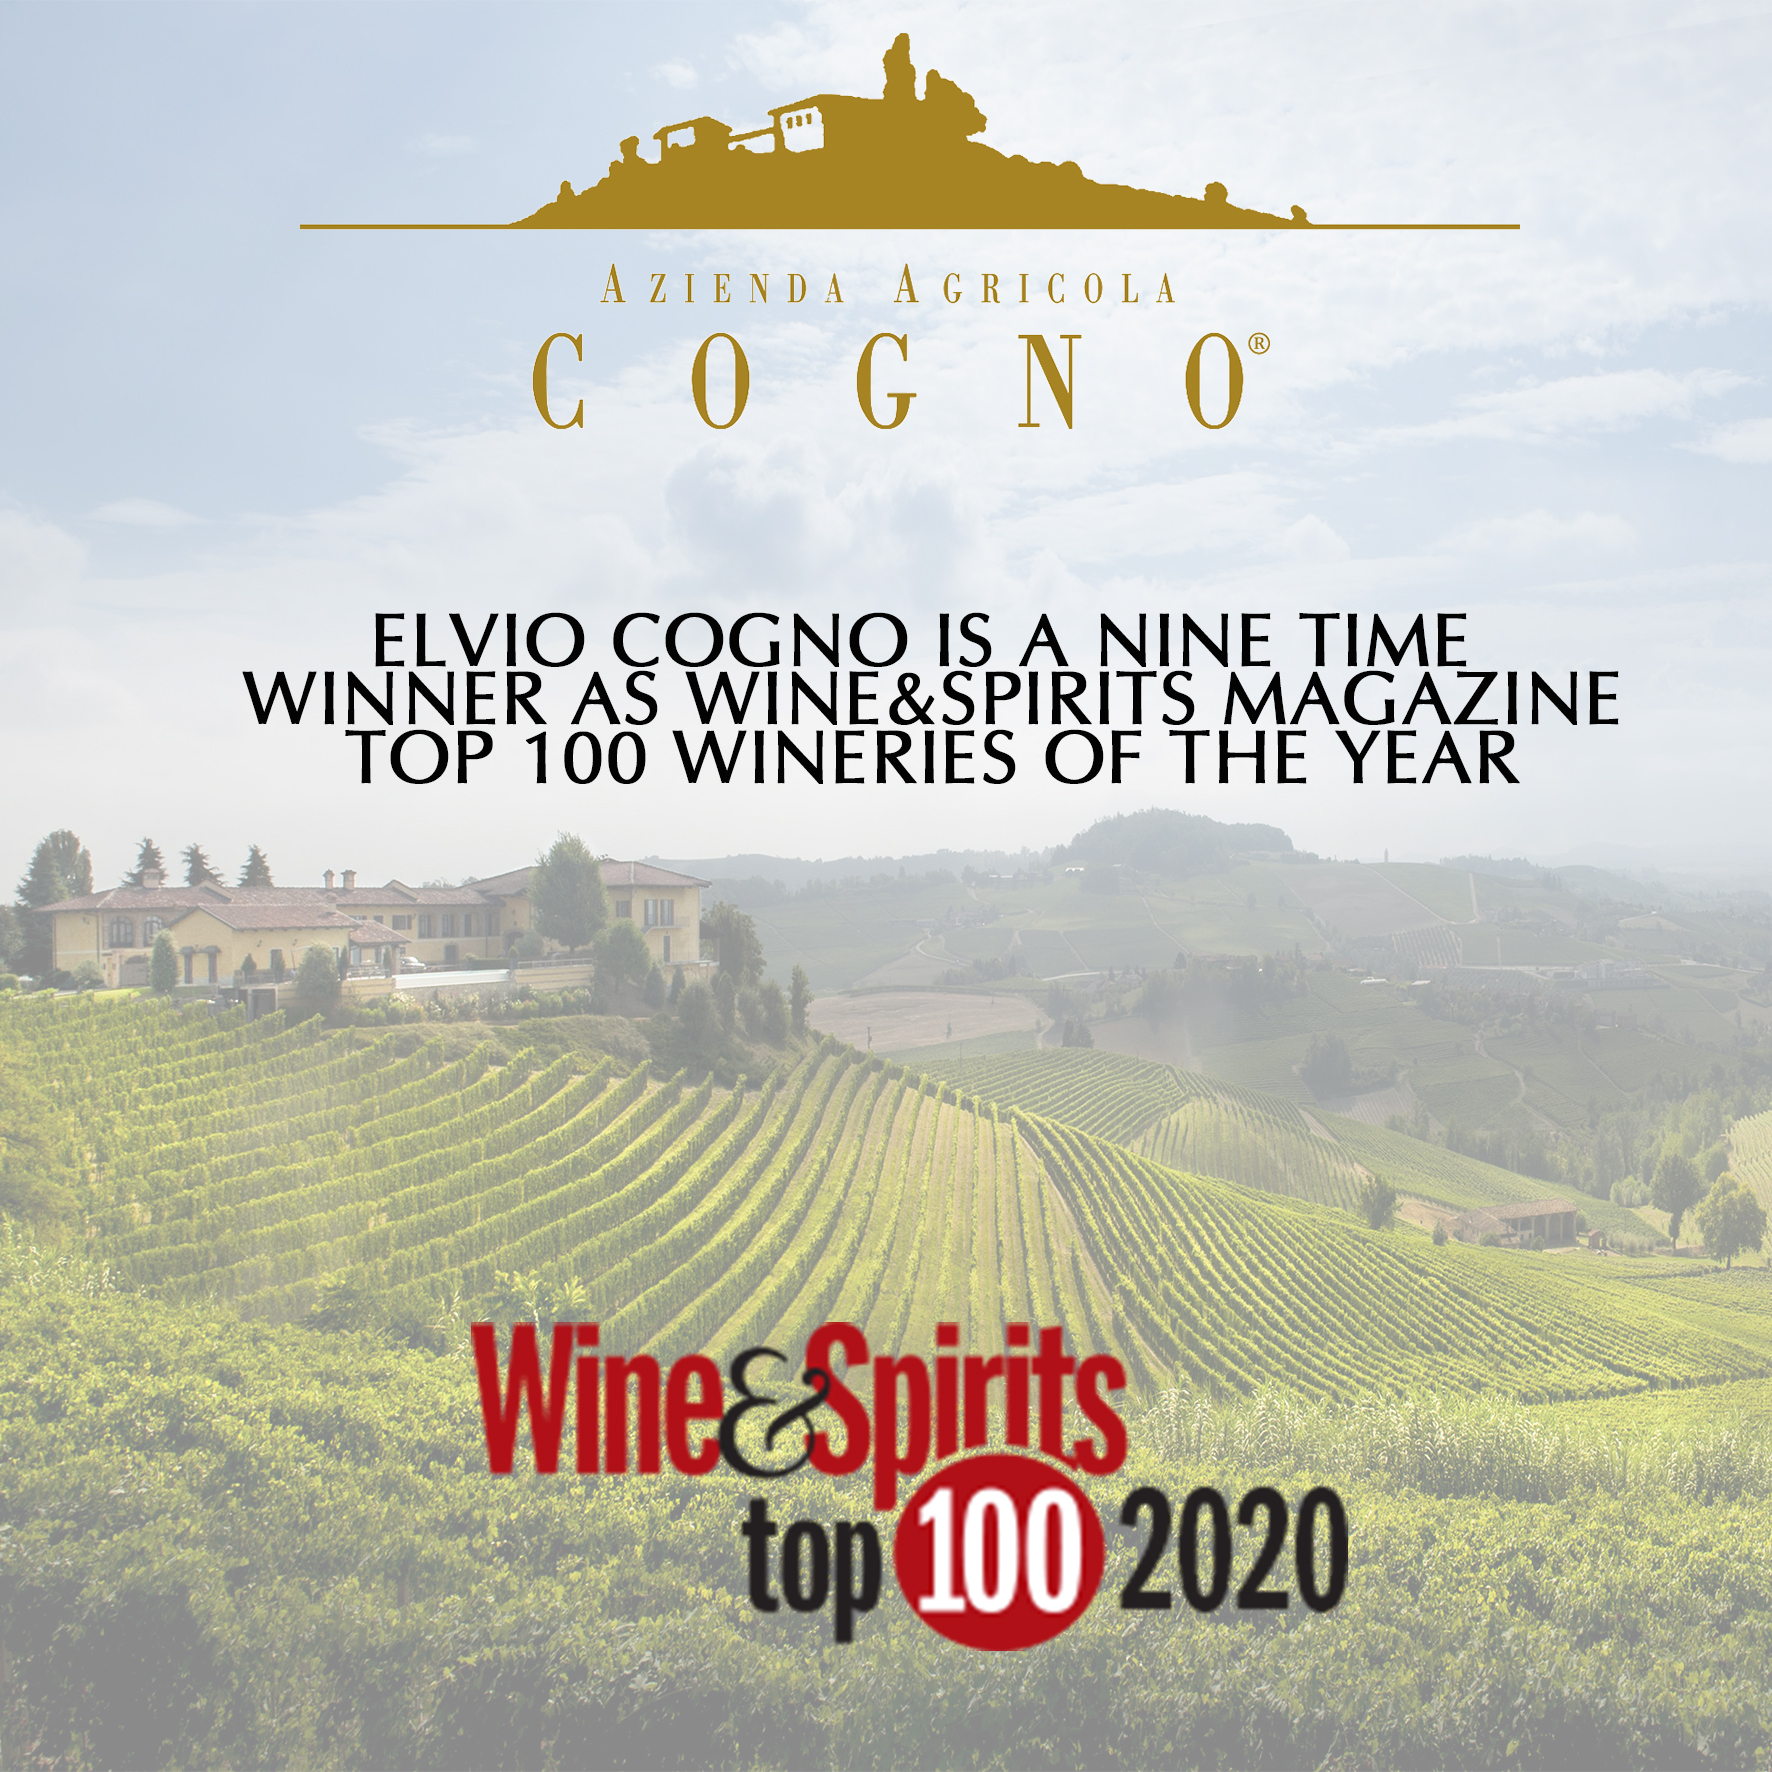 WINE&SPIRITS TOP 100 WINERIES OF THE YEAR 2020